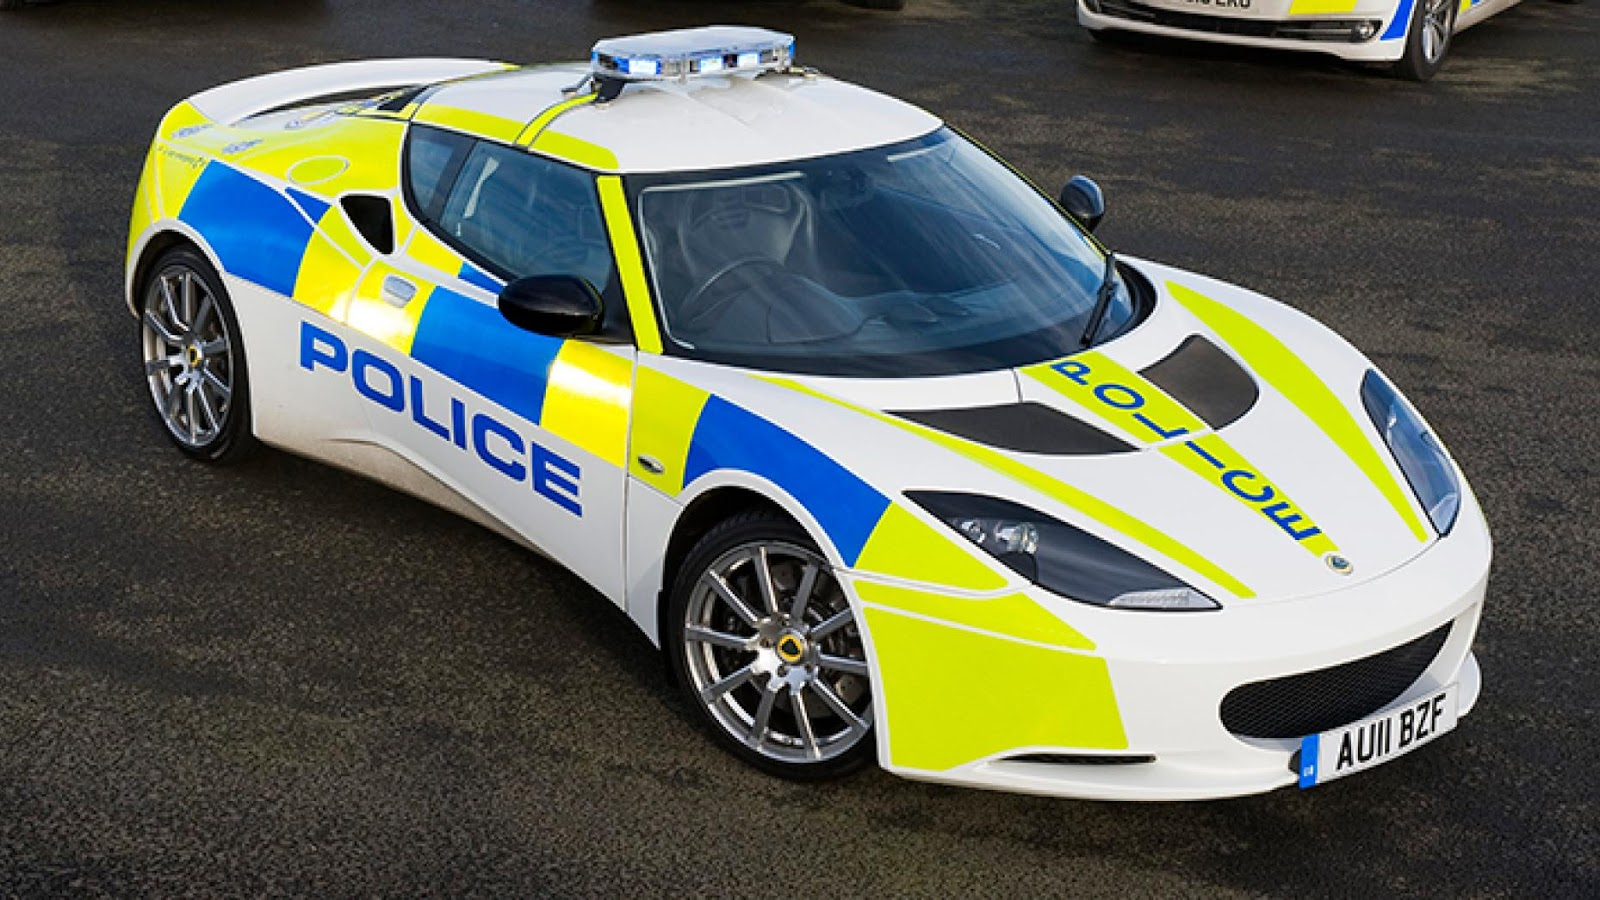 UK Police Lotus Evora S